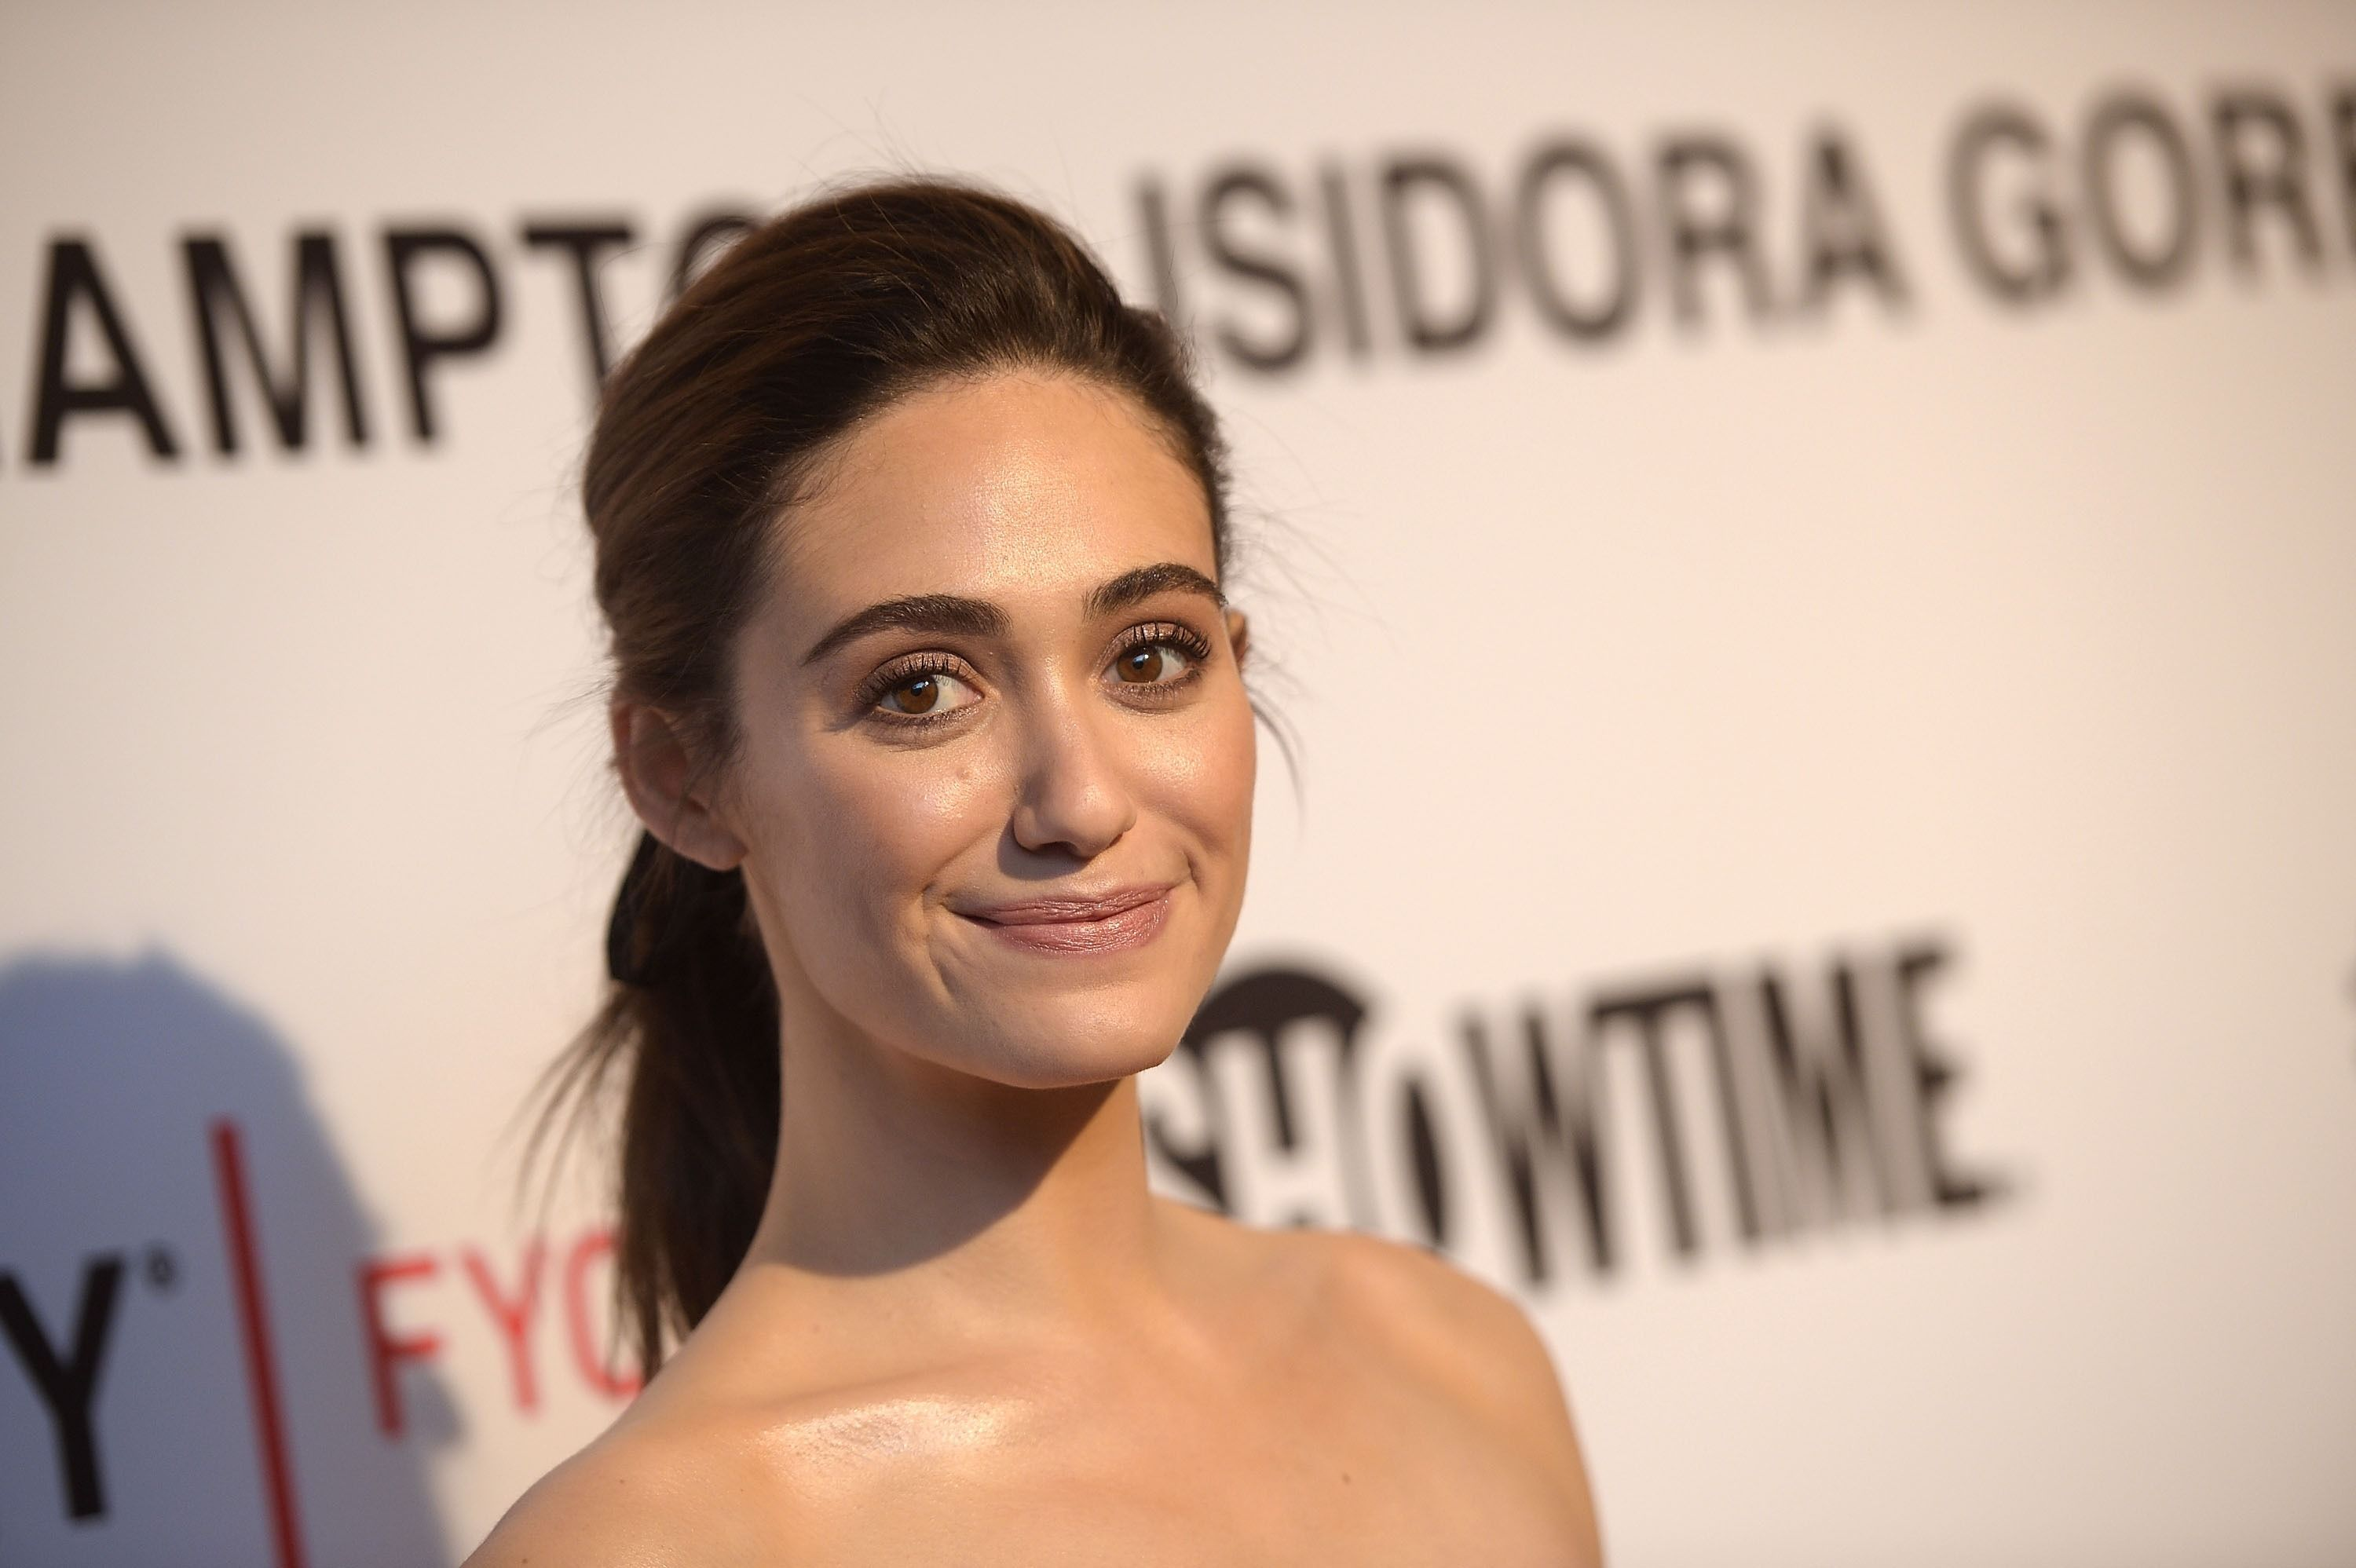 Emmy-Rossum-Wiki-Biography-Age-Height-Weight-Profile-Body Measurement